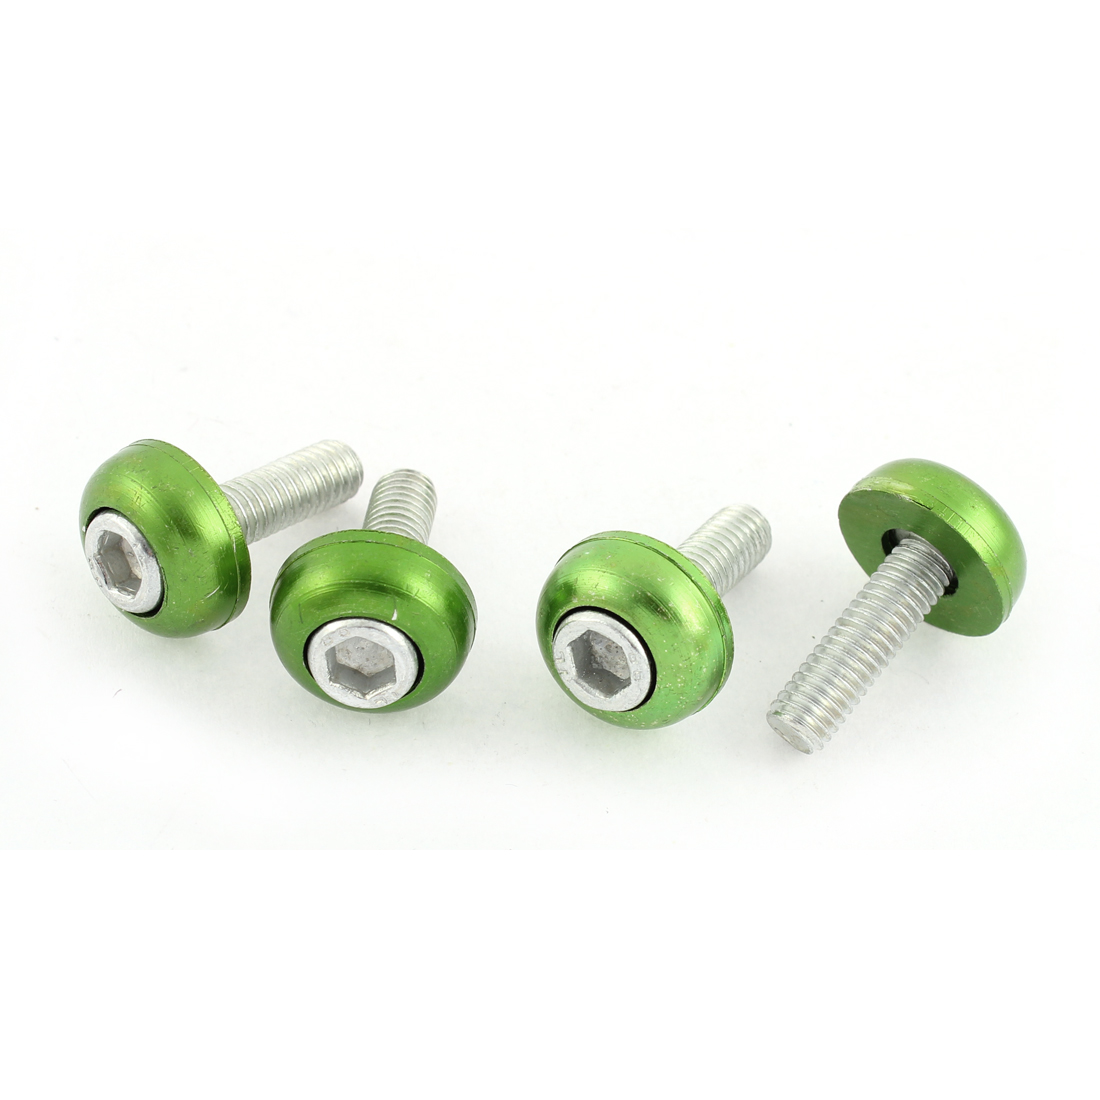 4 Pcs Green Round Shaped License Plate Decorative Screw Bolt for Car